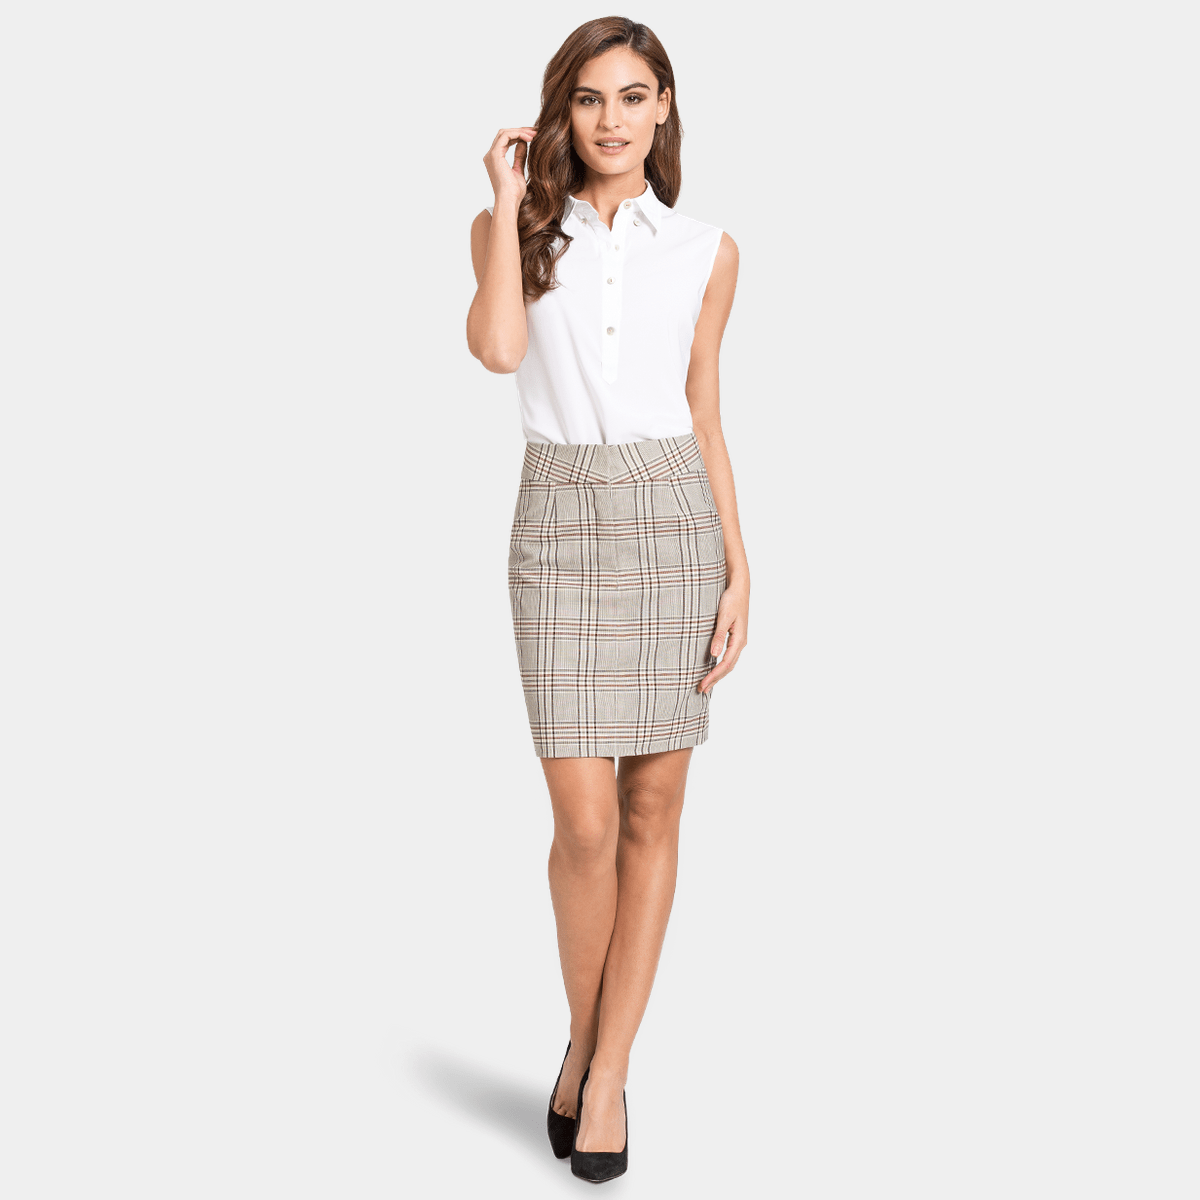 0897f01bf Women's Custom Skirts | Custom Workwear, Suits & Blazers - Sumissura